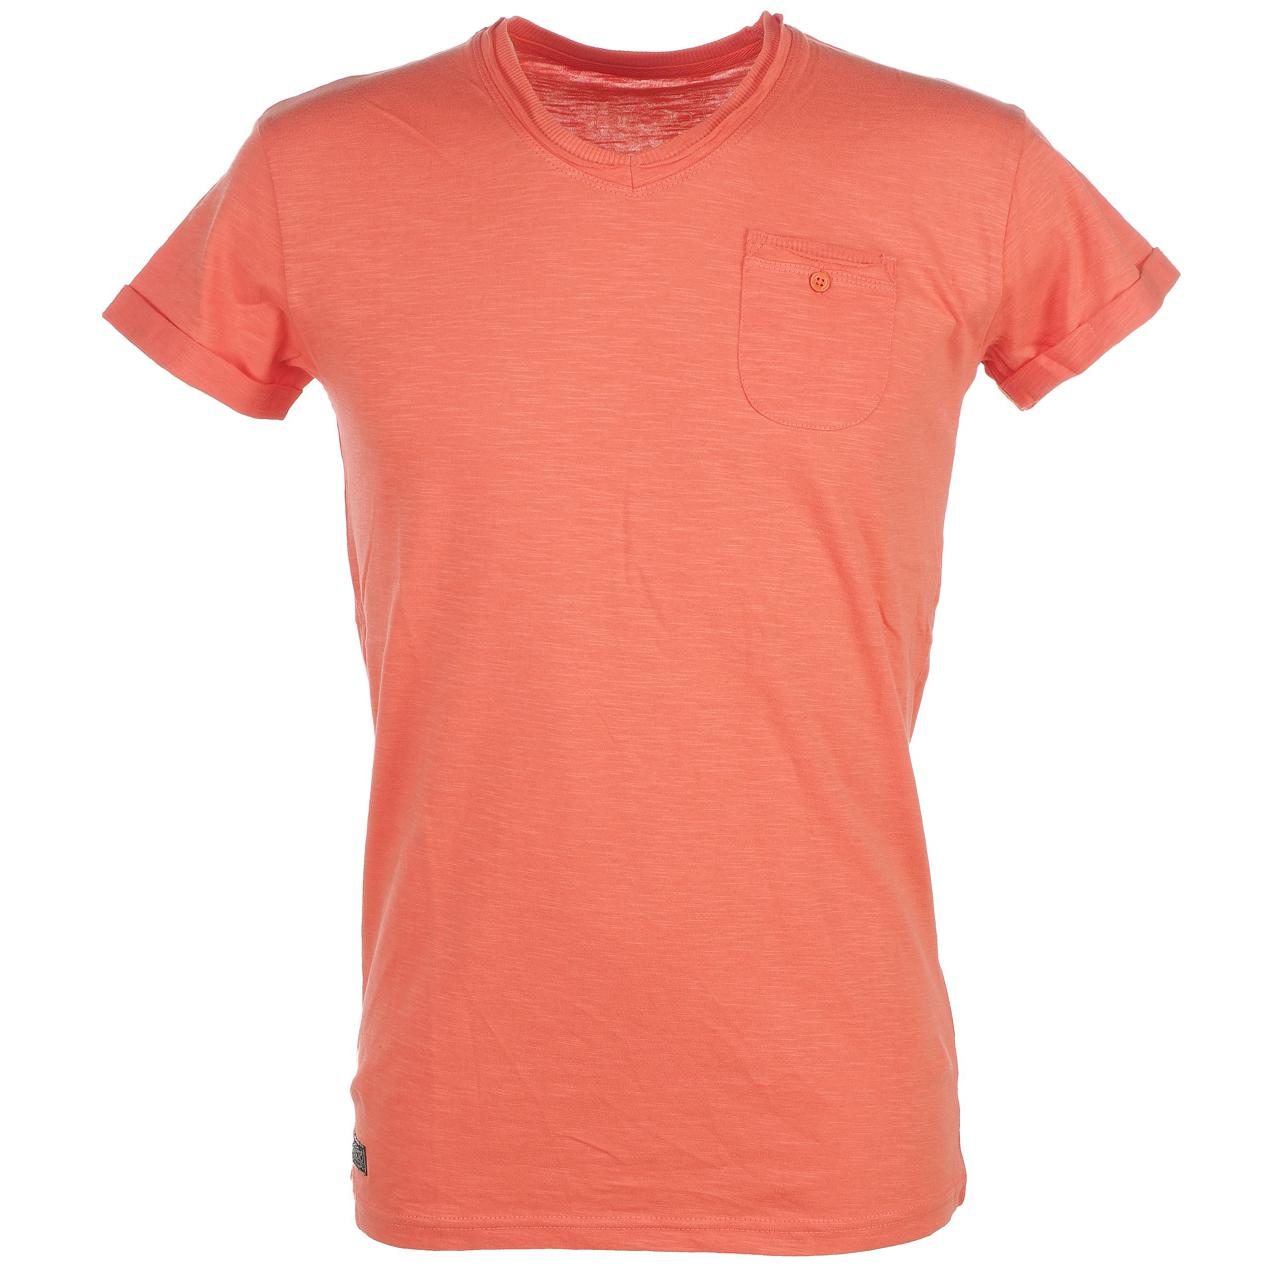 Tee-shirt-manches-courtes-Biaggio-Louisianel-corail-mc-tee-Orange-22338-Neuf